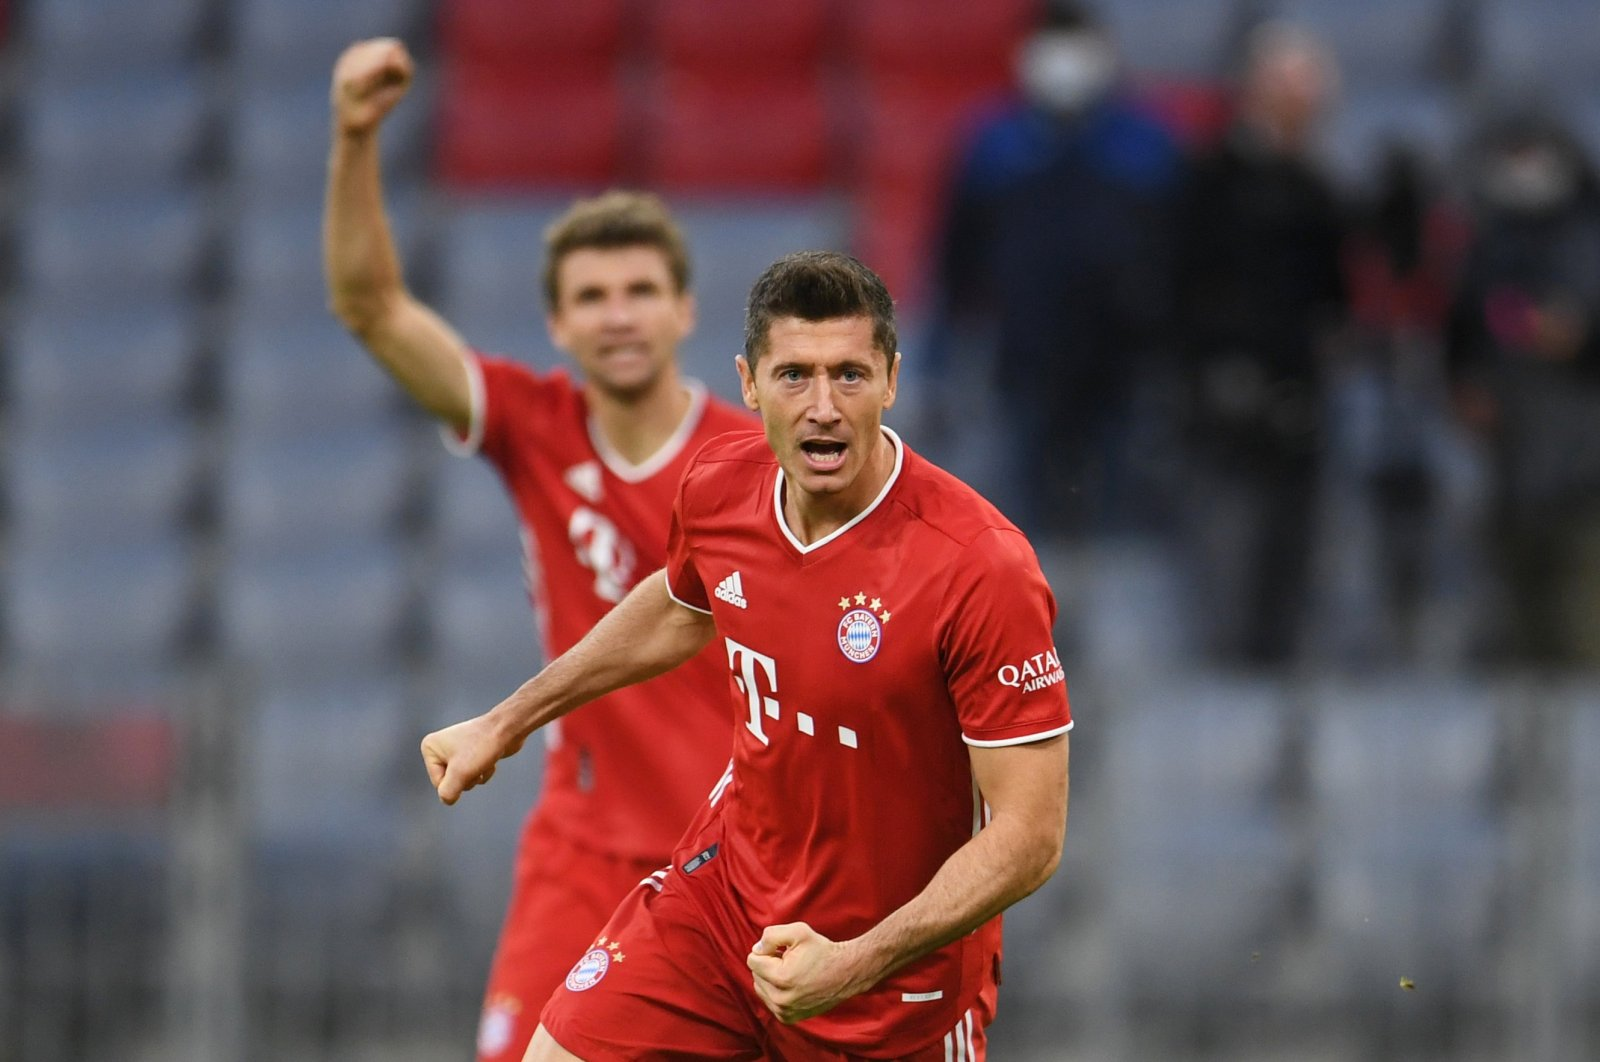 Bayern Munich's Robert Lewandowski celebrates scoring a goal during a Bundesliga match against Hertha Berlin, in Munich, Germany, Oct. 4, 2020. (Reuters Photo)